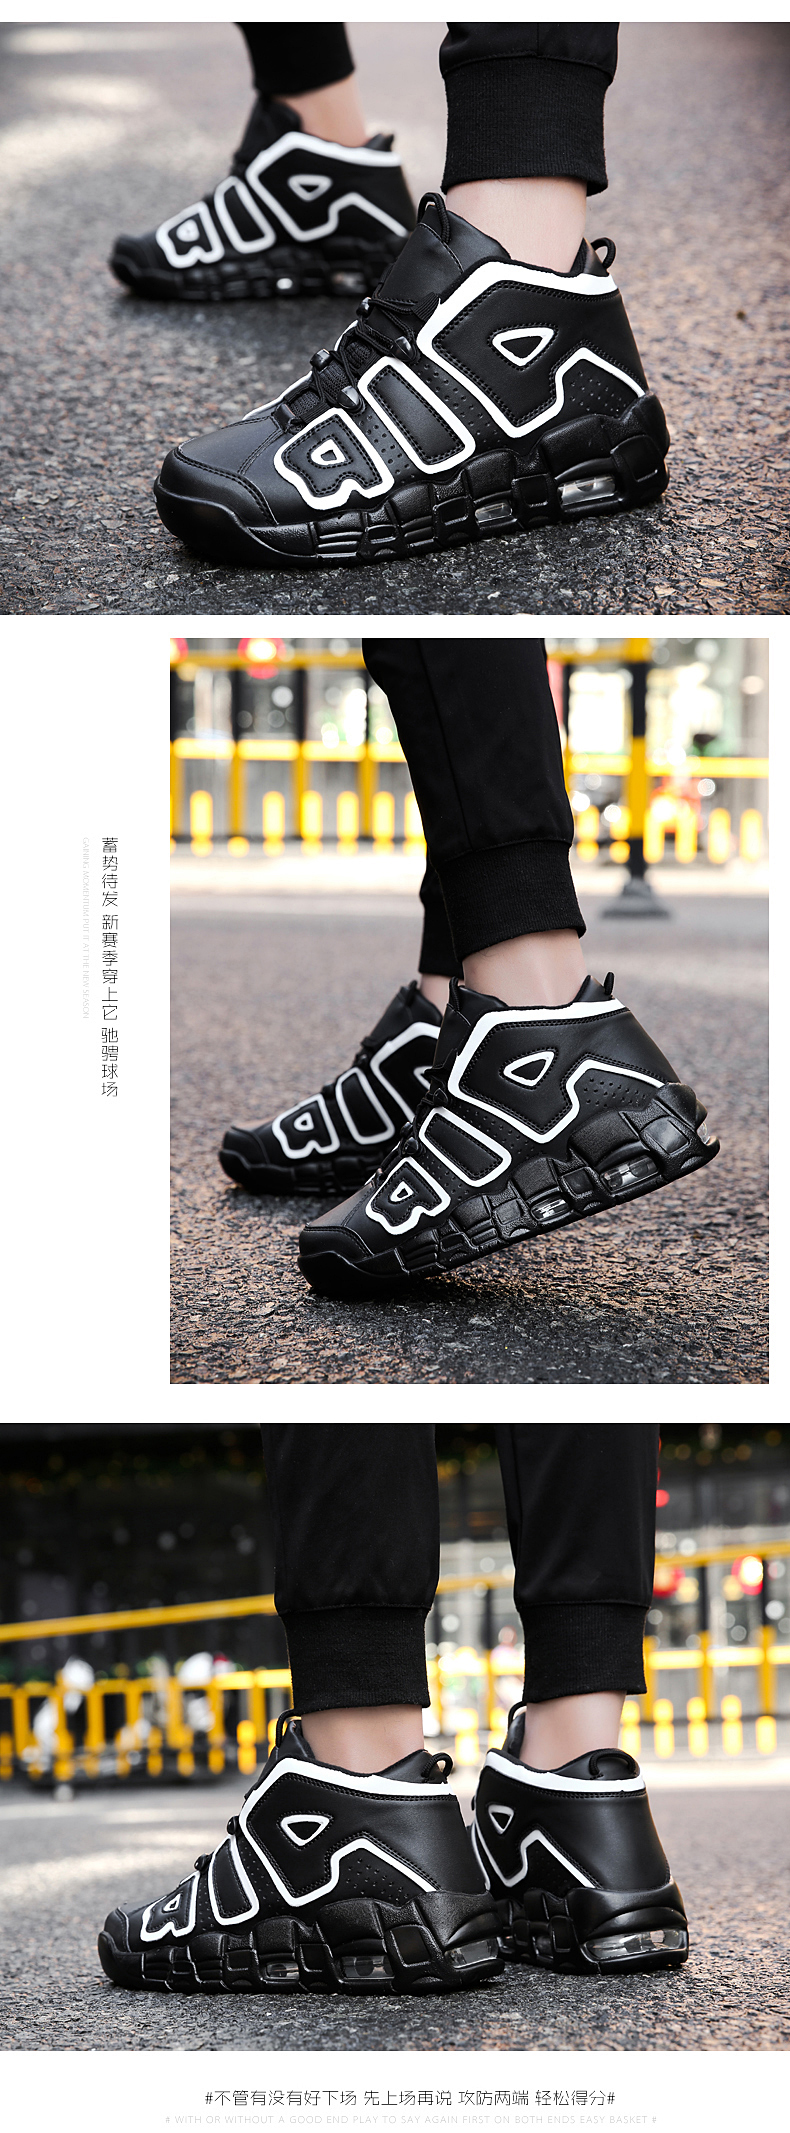 Fashion Sneakers Men High Quality Lace-up Canvas Shoes High top Male Brand Footwear Men's Casual Shoes Fashion Black Sneakers 45